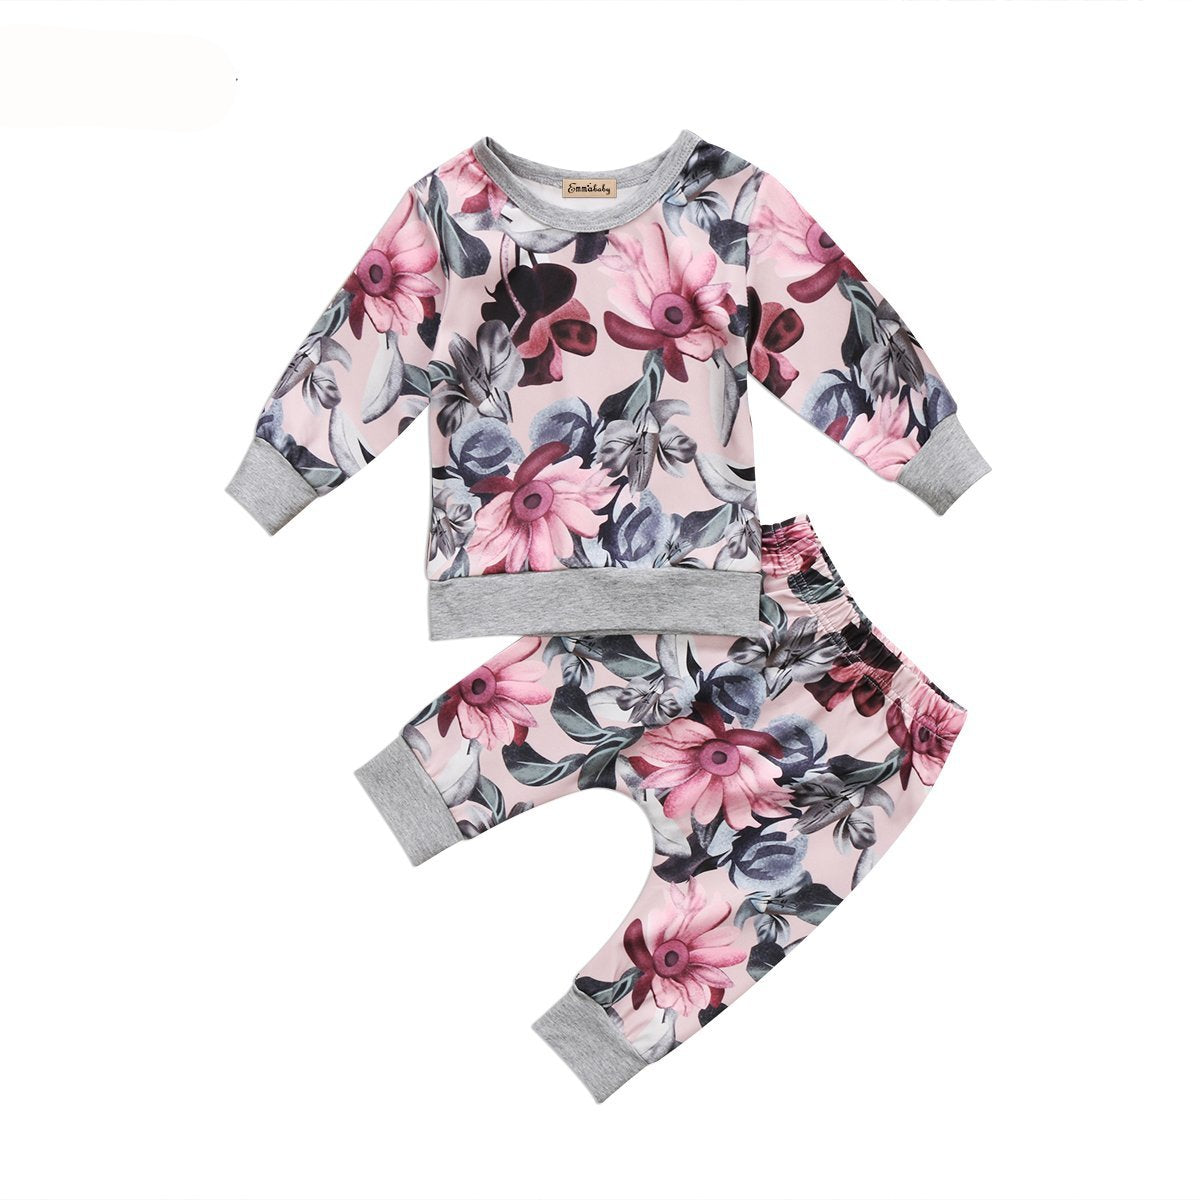 New arrival Floral print clothes set Baby Girl Kids long sleeve Sweatshirt Tops+ Long Pants cute 2pcs Outfits Tracksuit Clothes - Here Comes A Baby